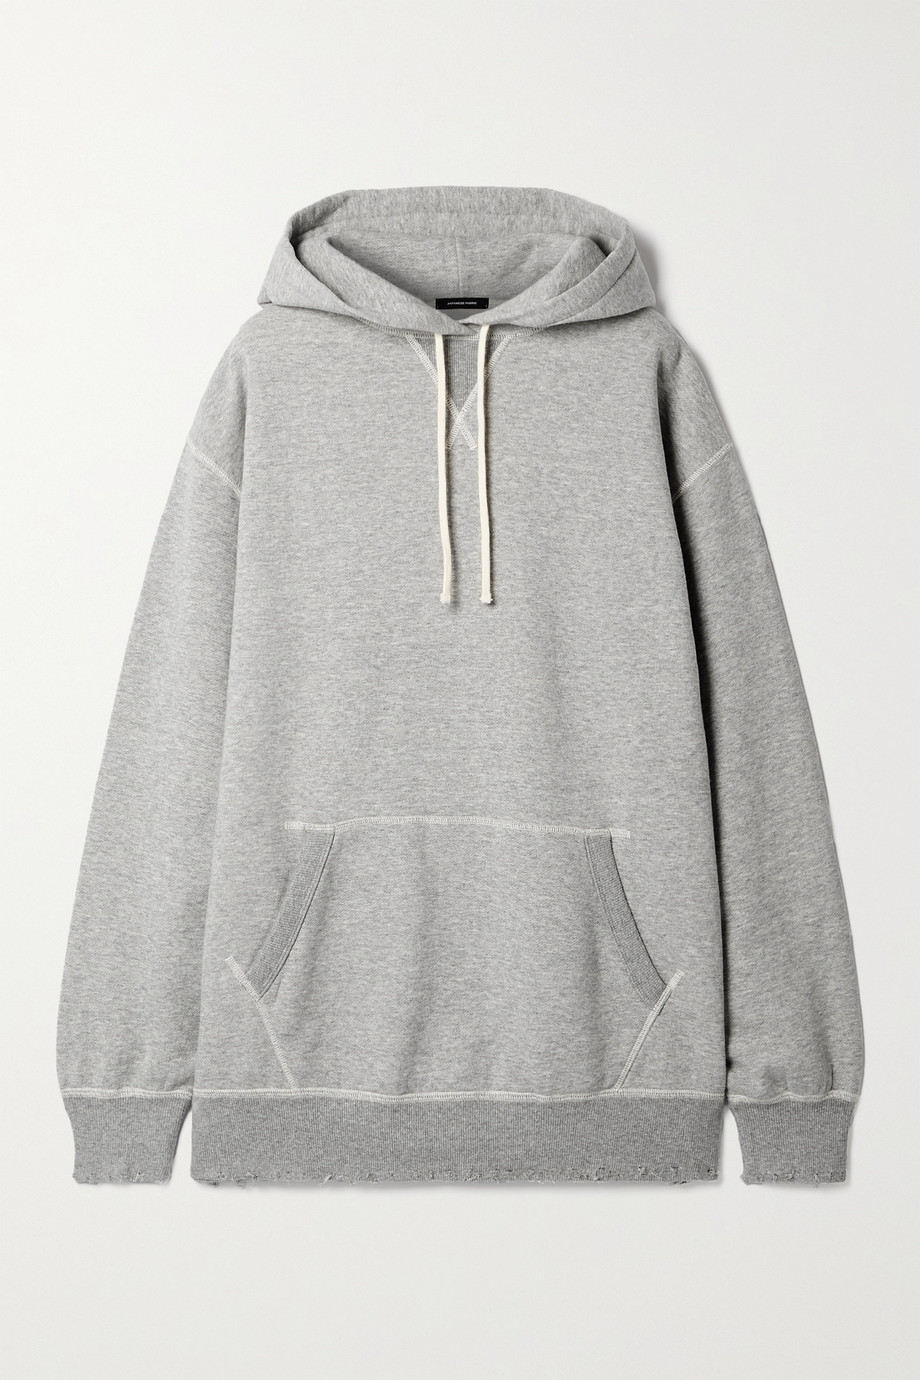 R13 Vintage oversized distressed cotton-jersey hoodie